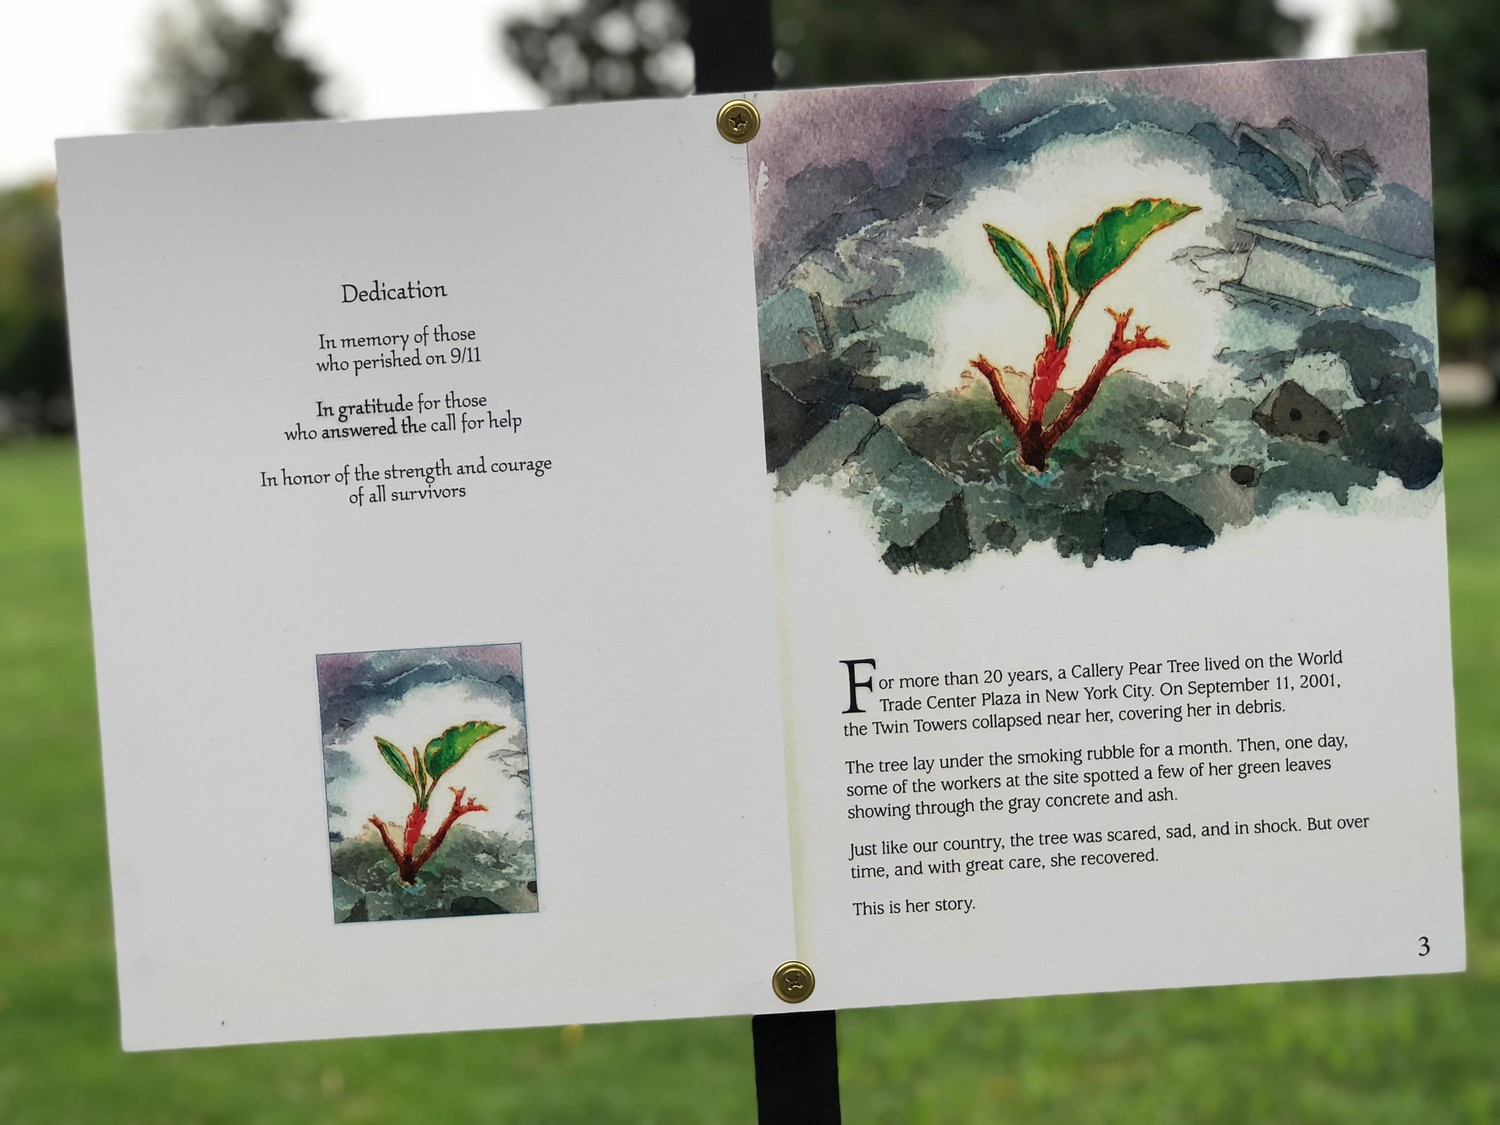 The story of the tree that survived the collapse of the World Trade Center on Sept. 11, 2001, is posted around the Village Green.